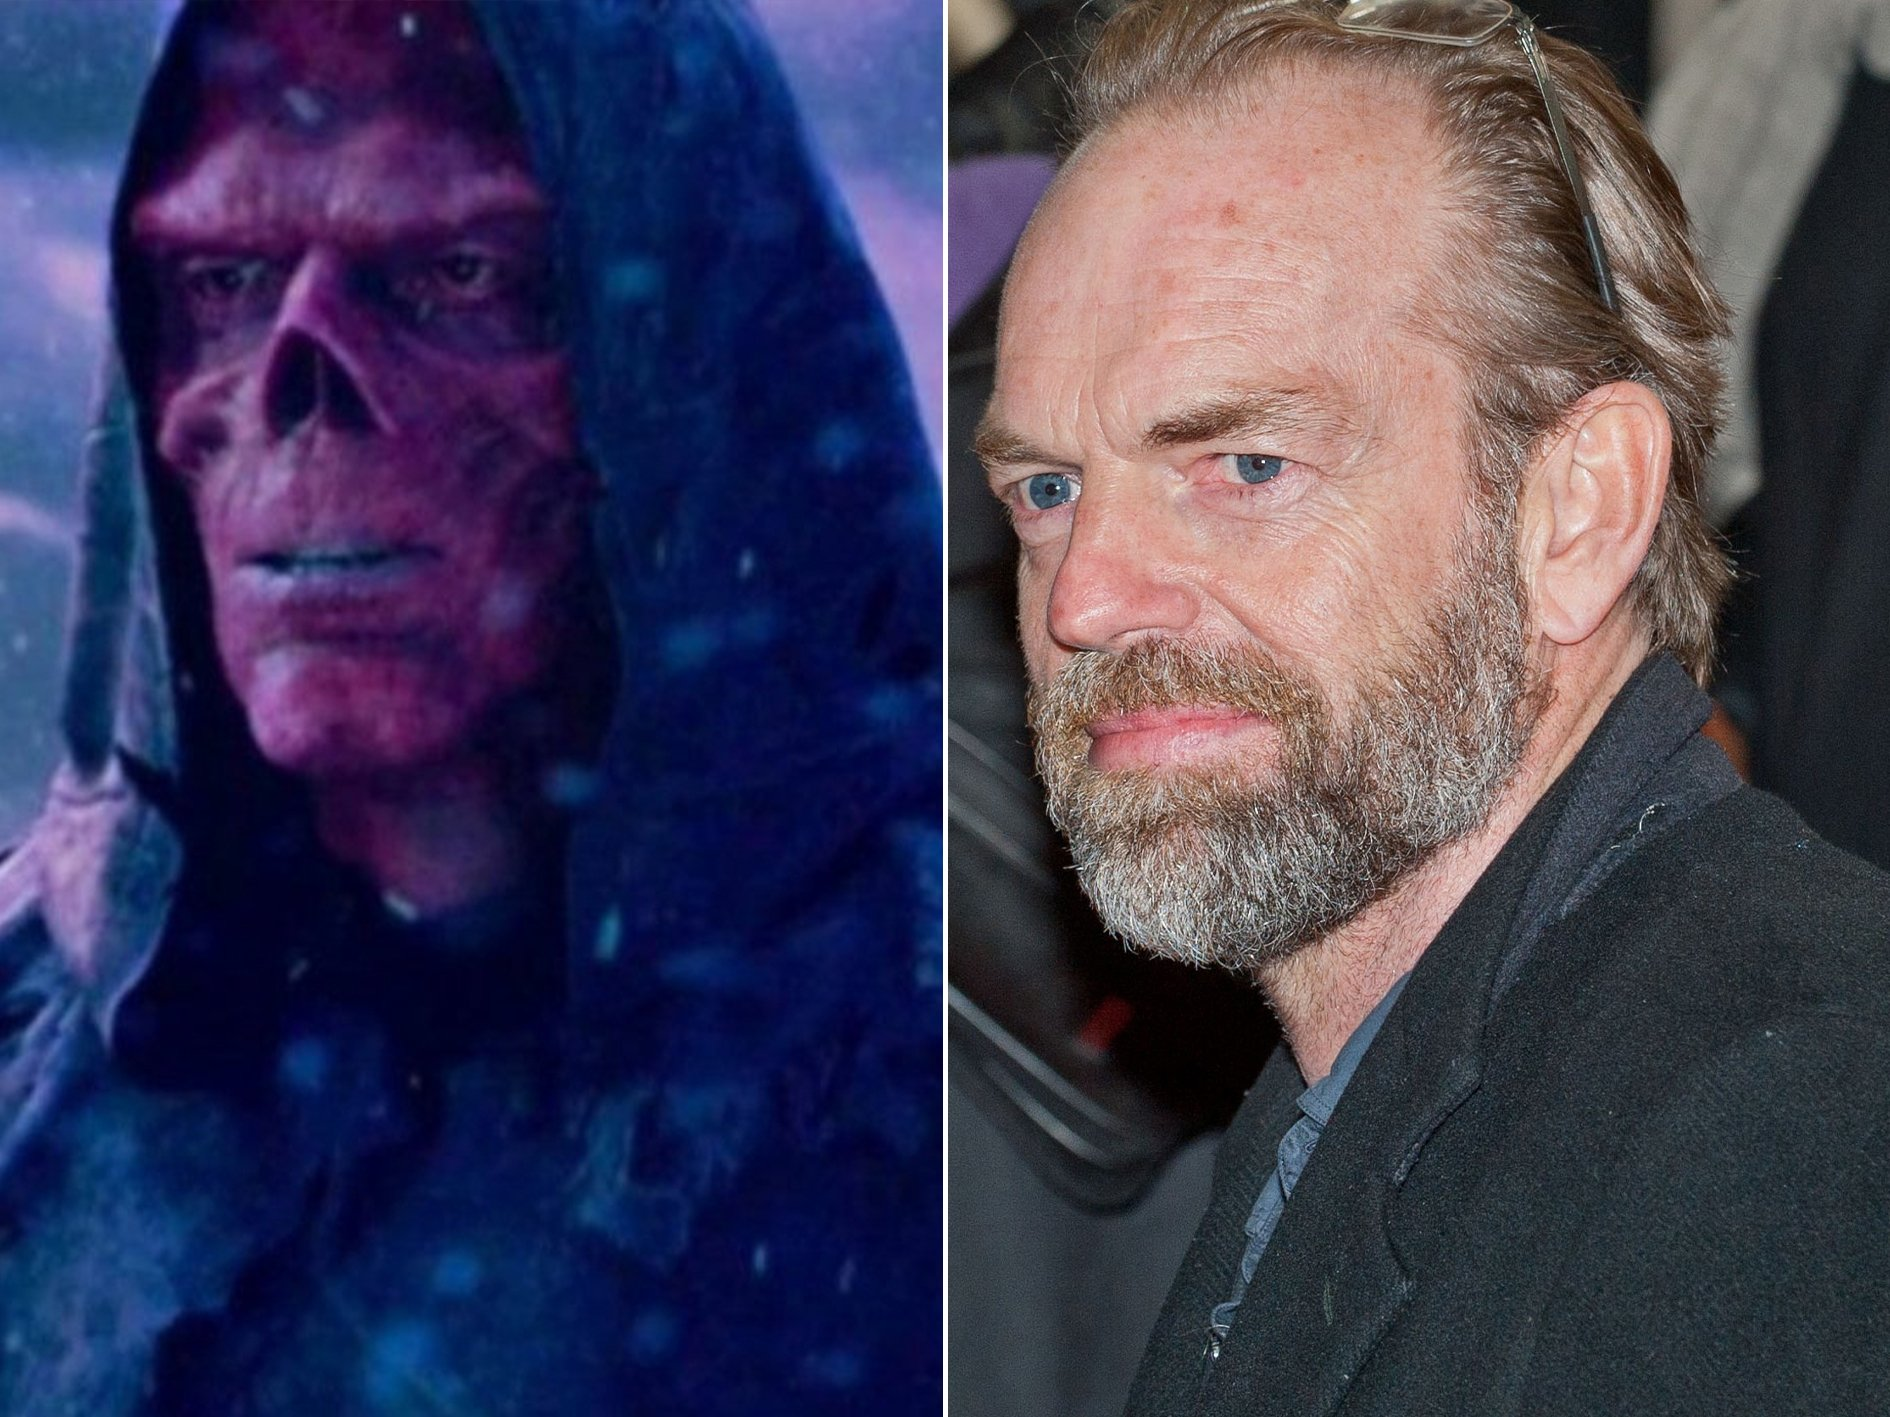 Red Skull Hugo Weaving 25 Things You Didn't Know About Avengers: Endgame